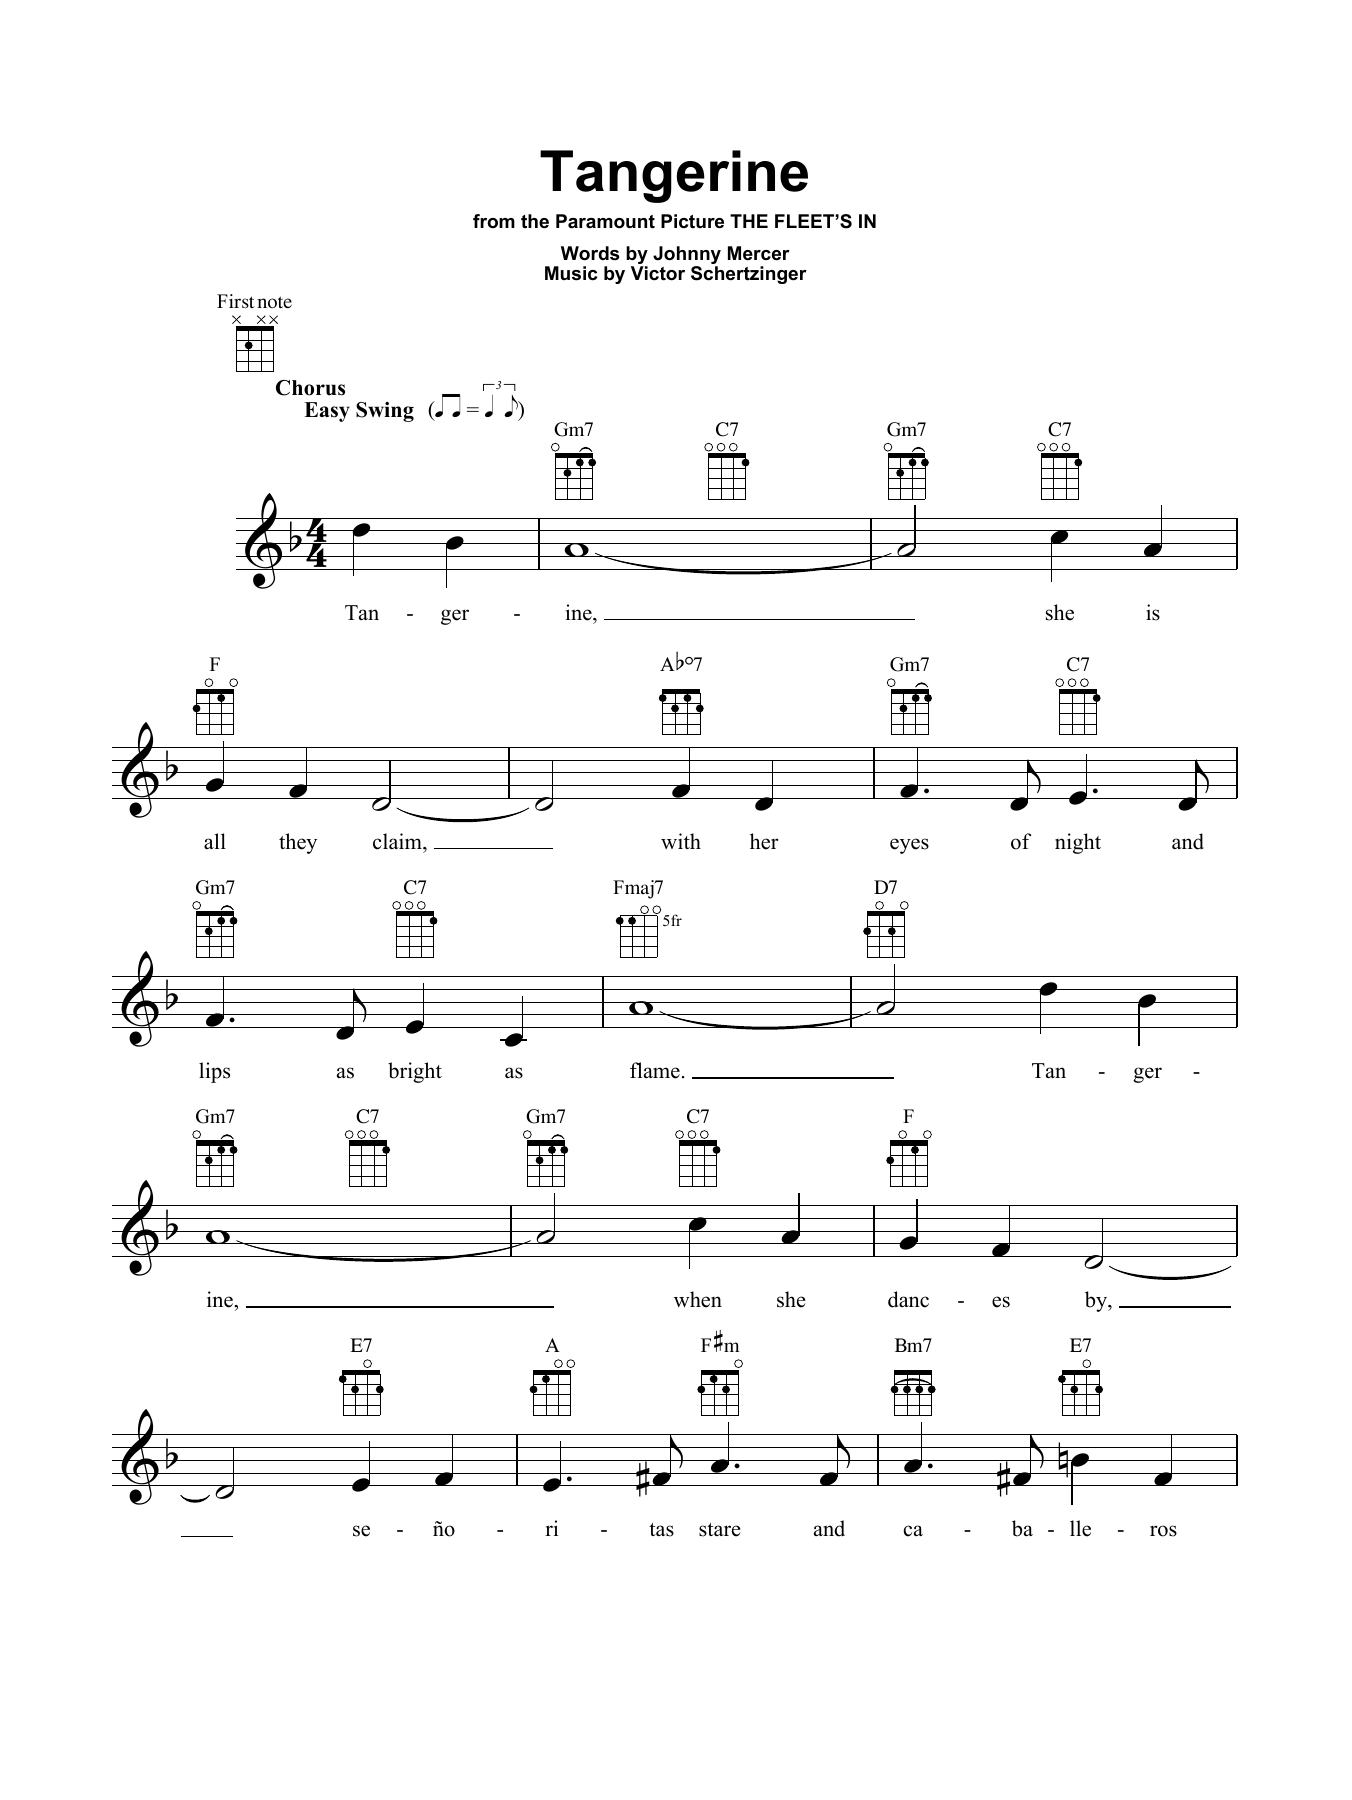 Jimmy Dorsey & His Orchestra Tangerine sheet music notes and chords. Download Printable PDF.